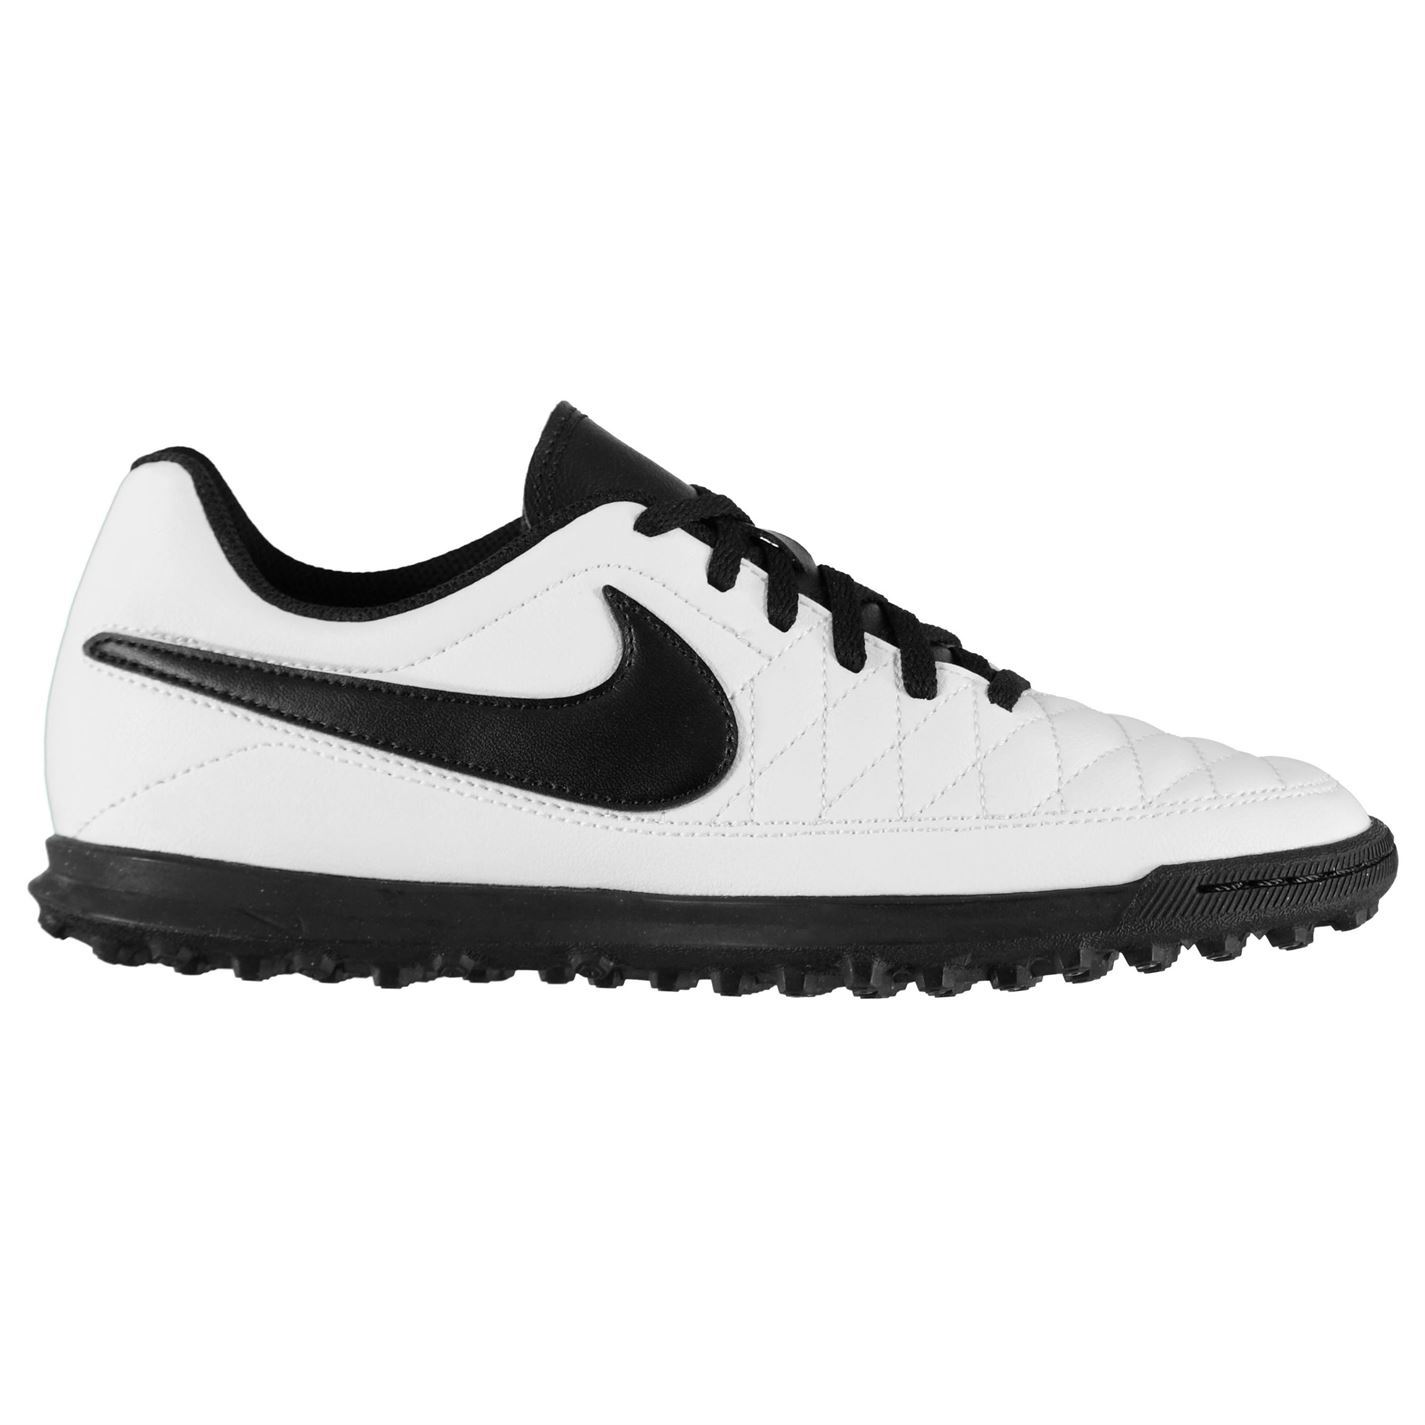 Nike-majestry-Astro-Turf-Football-Baskets-Pour-Homme-Football-Baskets-Chaussures miniature 8